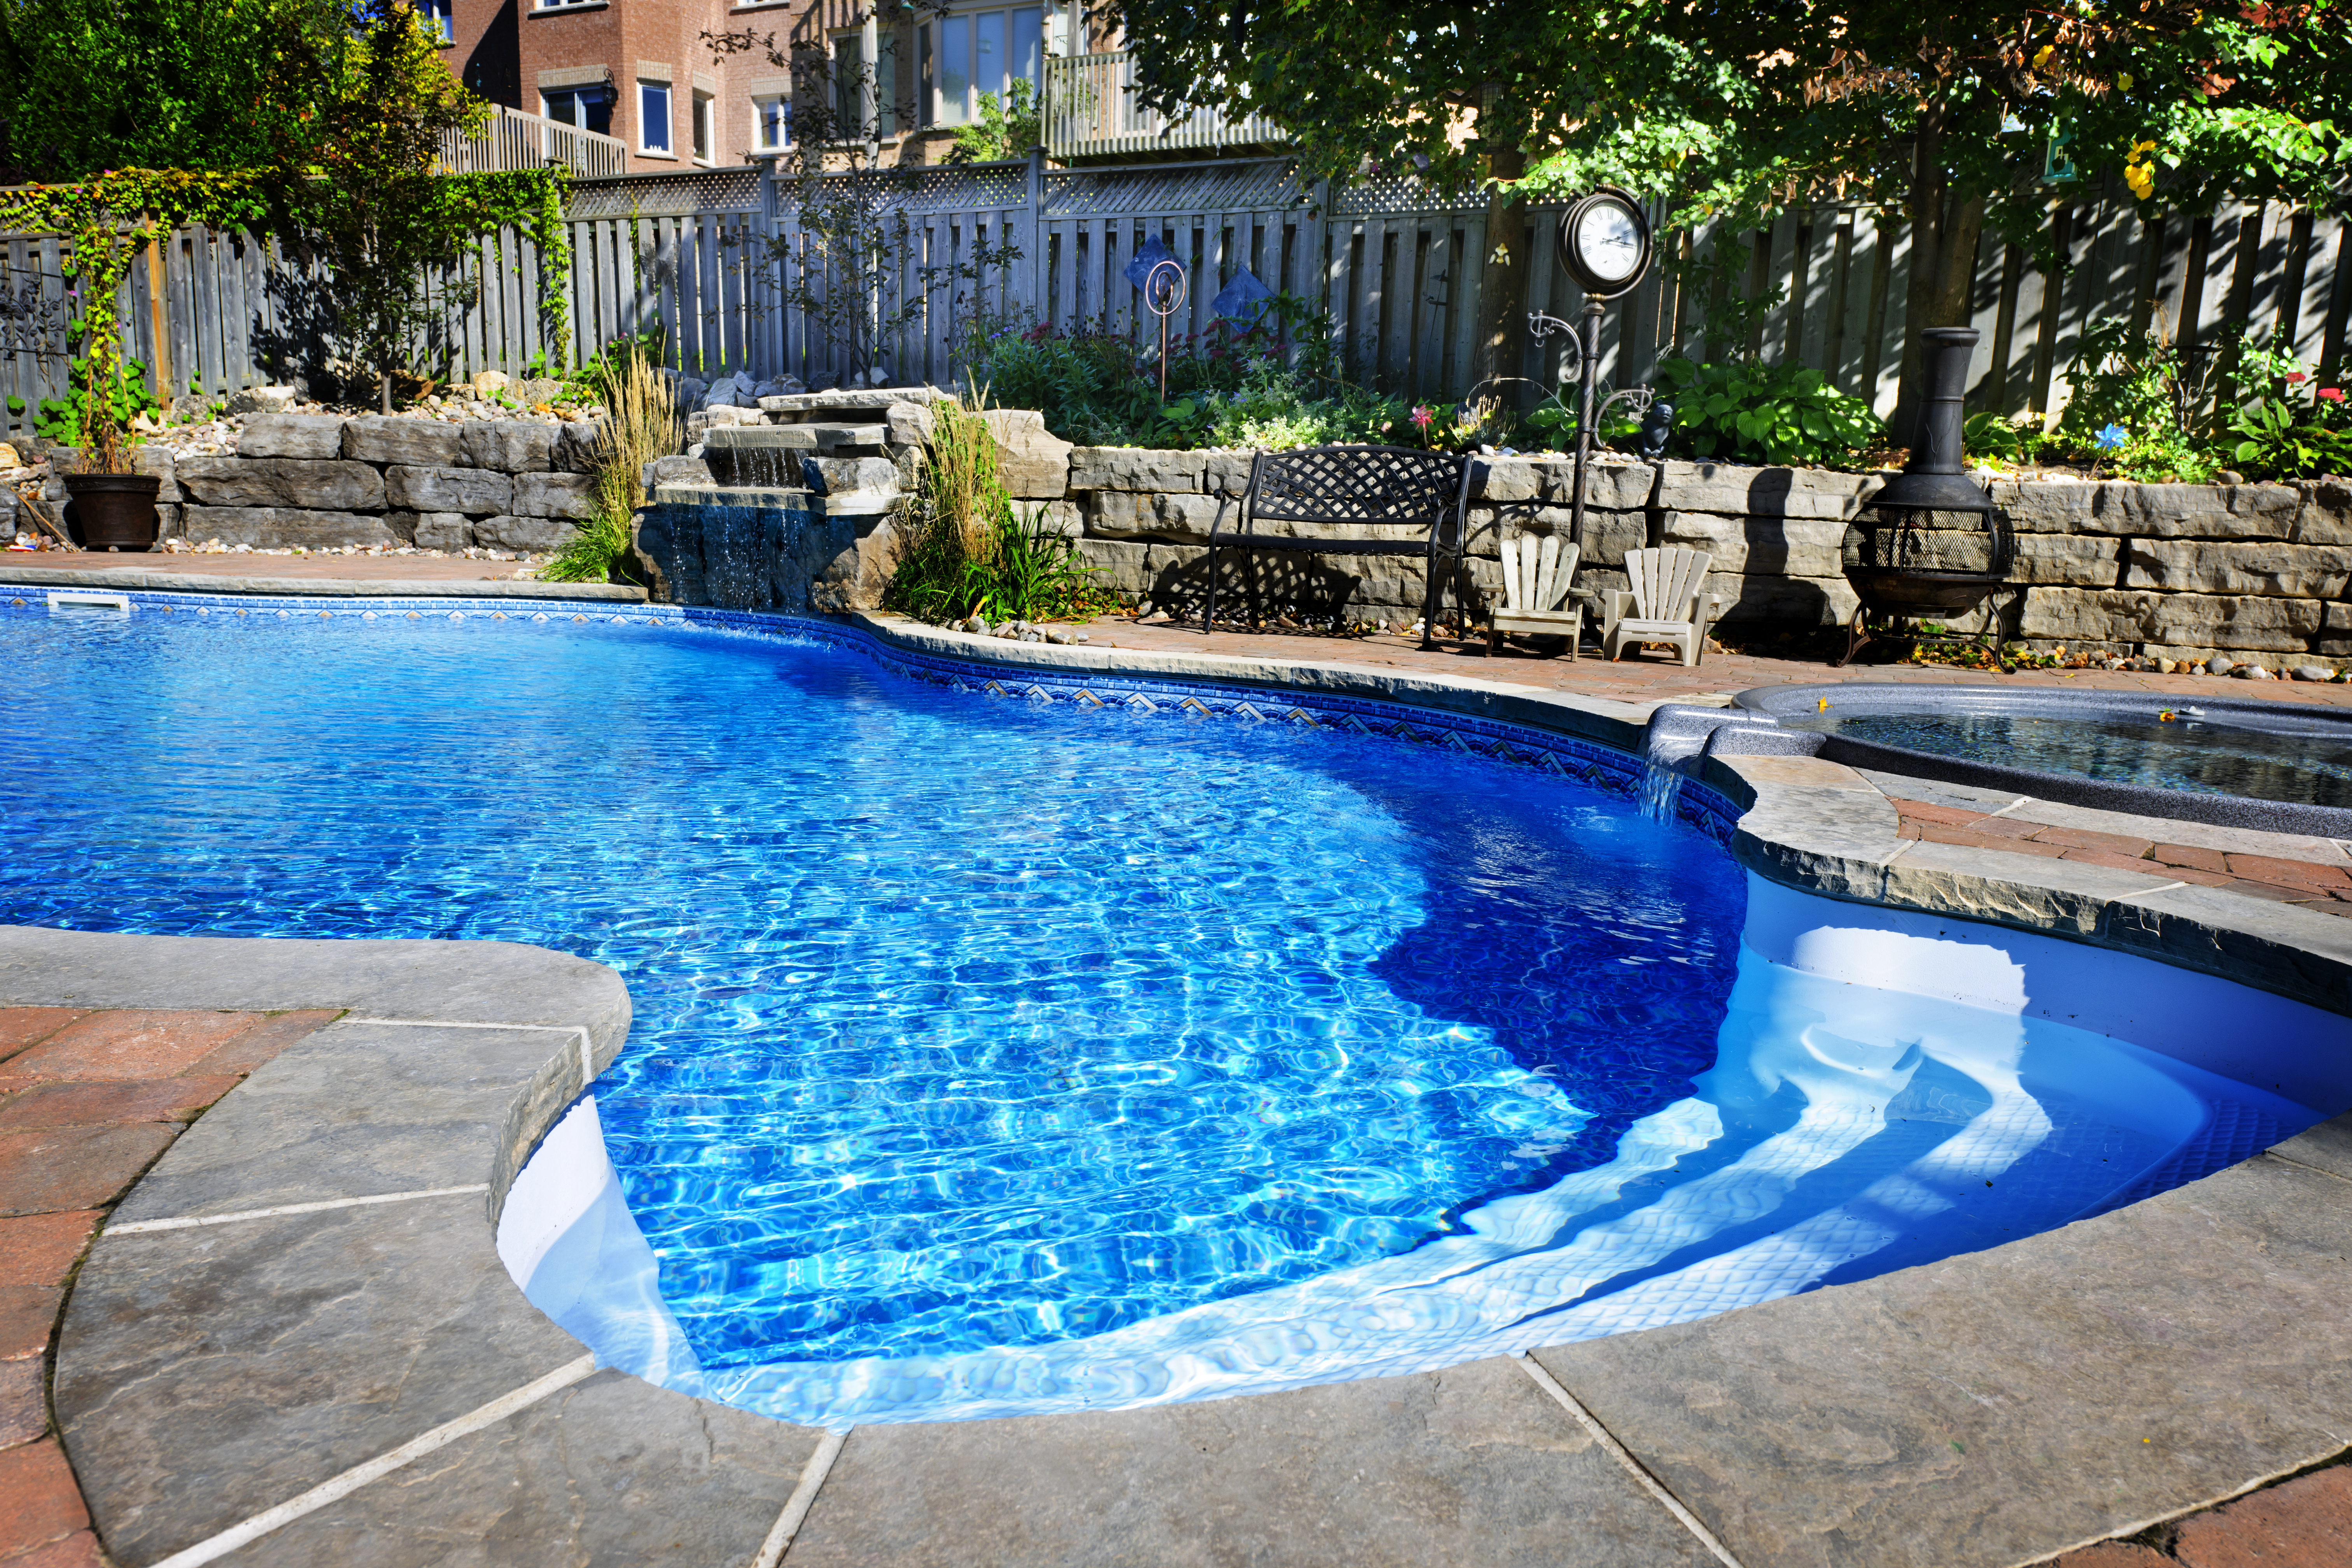 Getting the Timing Right: How to Get the Best Deals on Pools